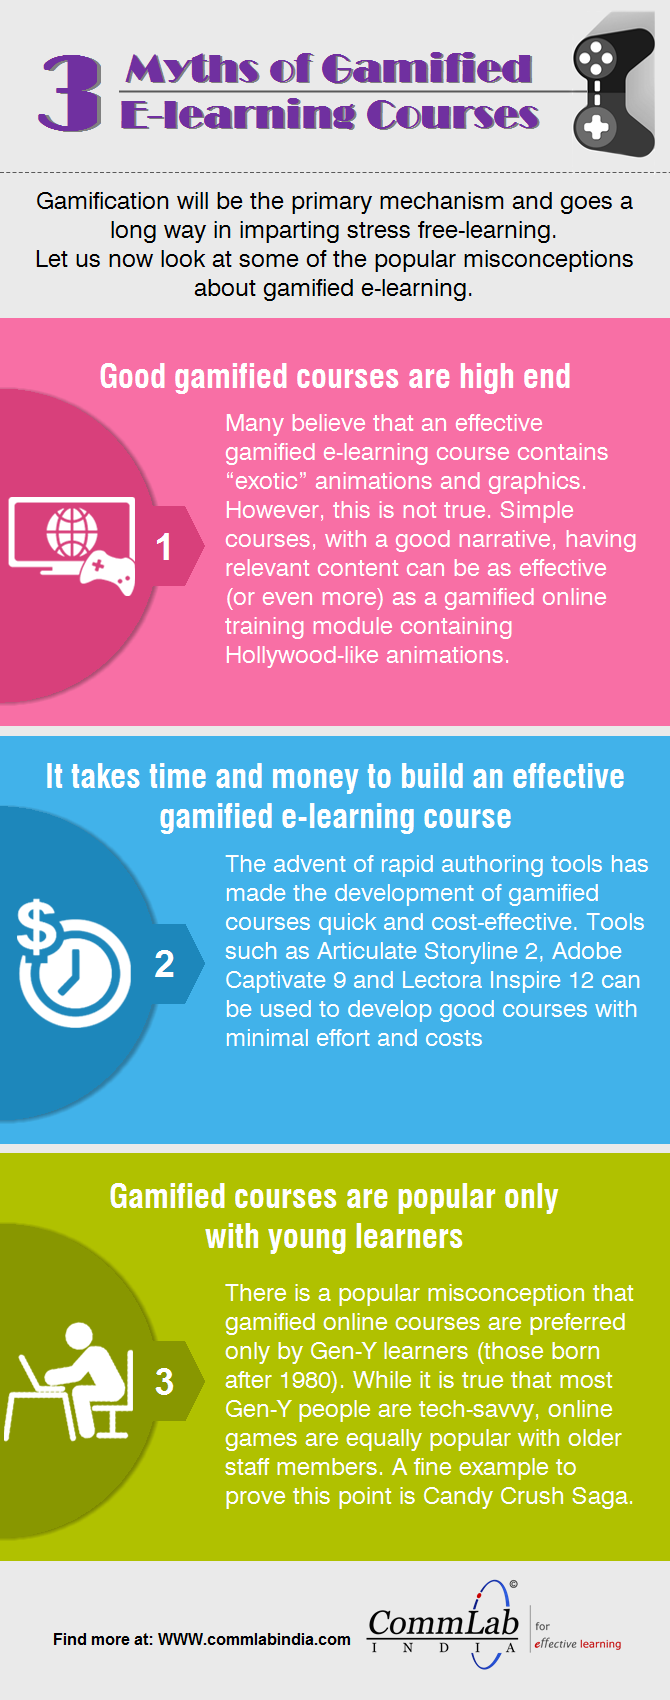 3 Myths of Gamified E-learning Courses [Infographic]